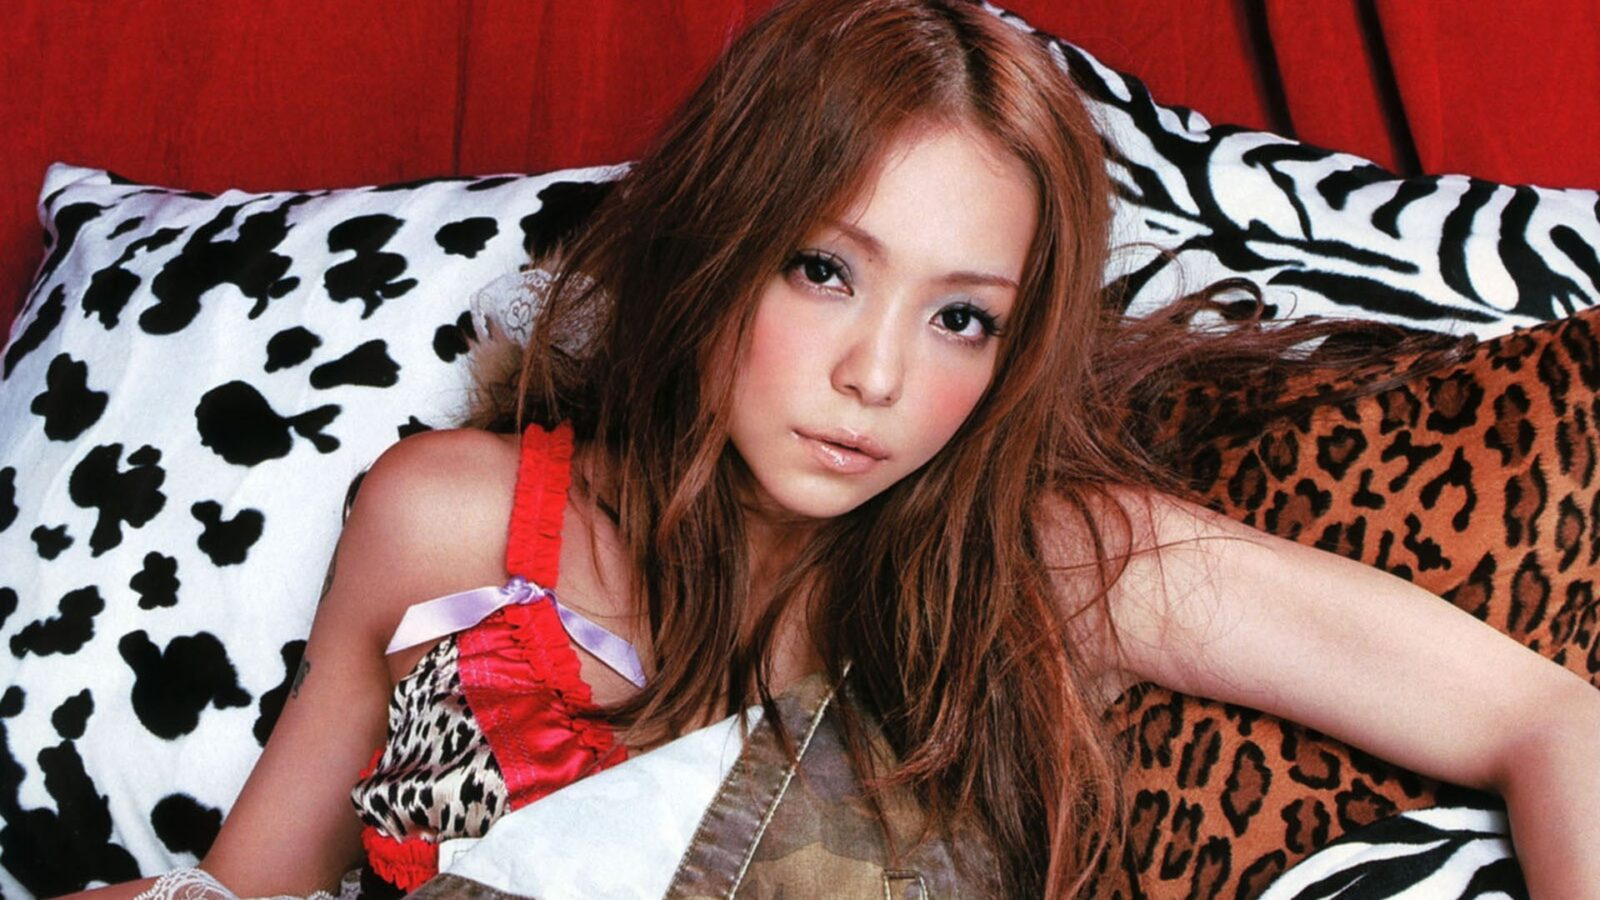 Namie Amuro HD wallpapers High Quality Wallpapers 1920x1080 Full Hd